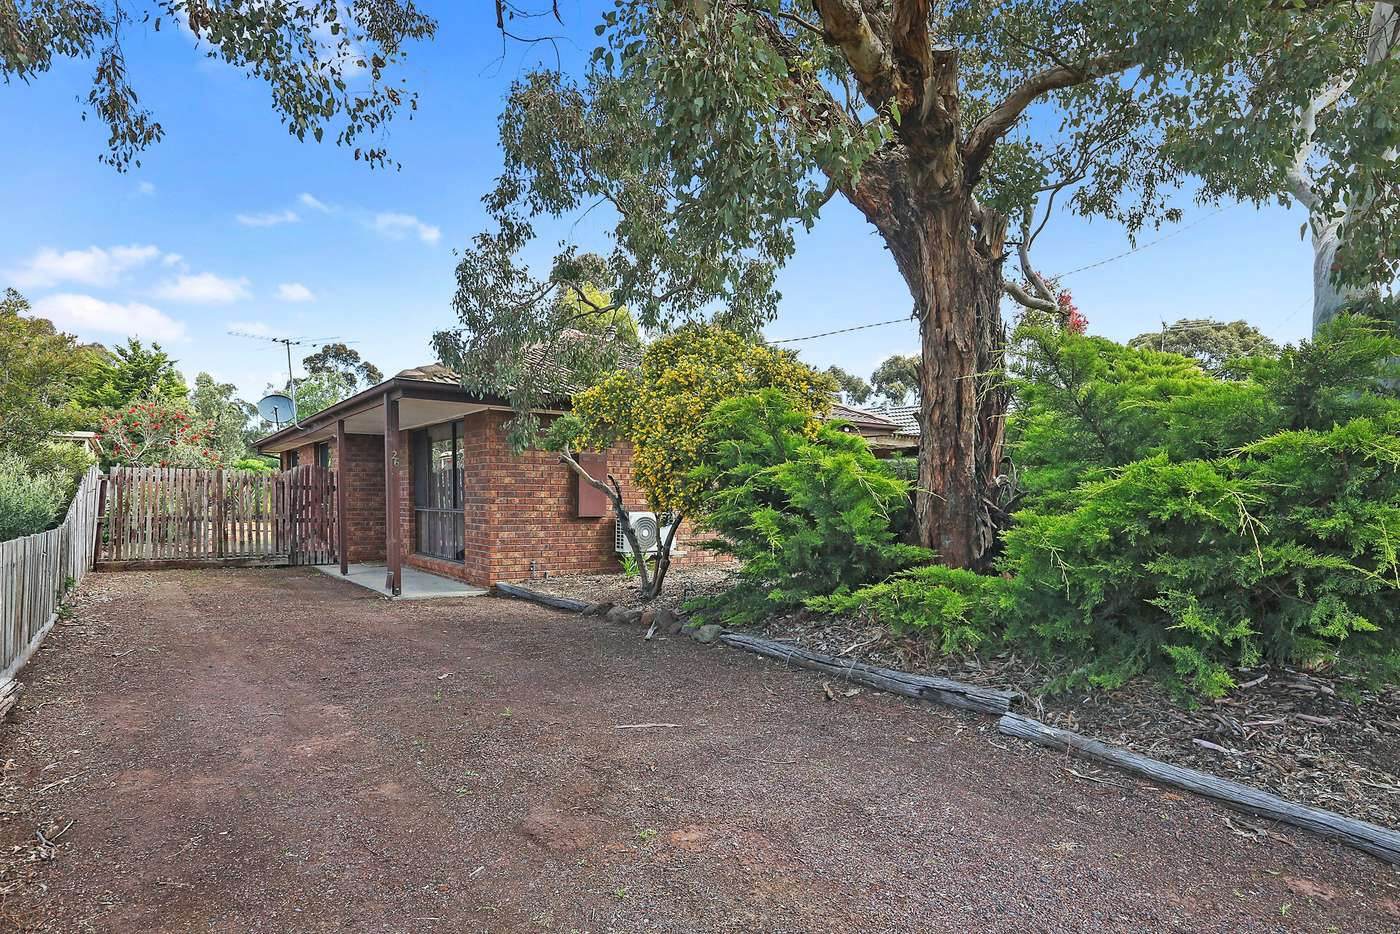 Main view of Homely house listing, 26 Brunel Close, Lara VIC 3212